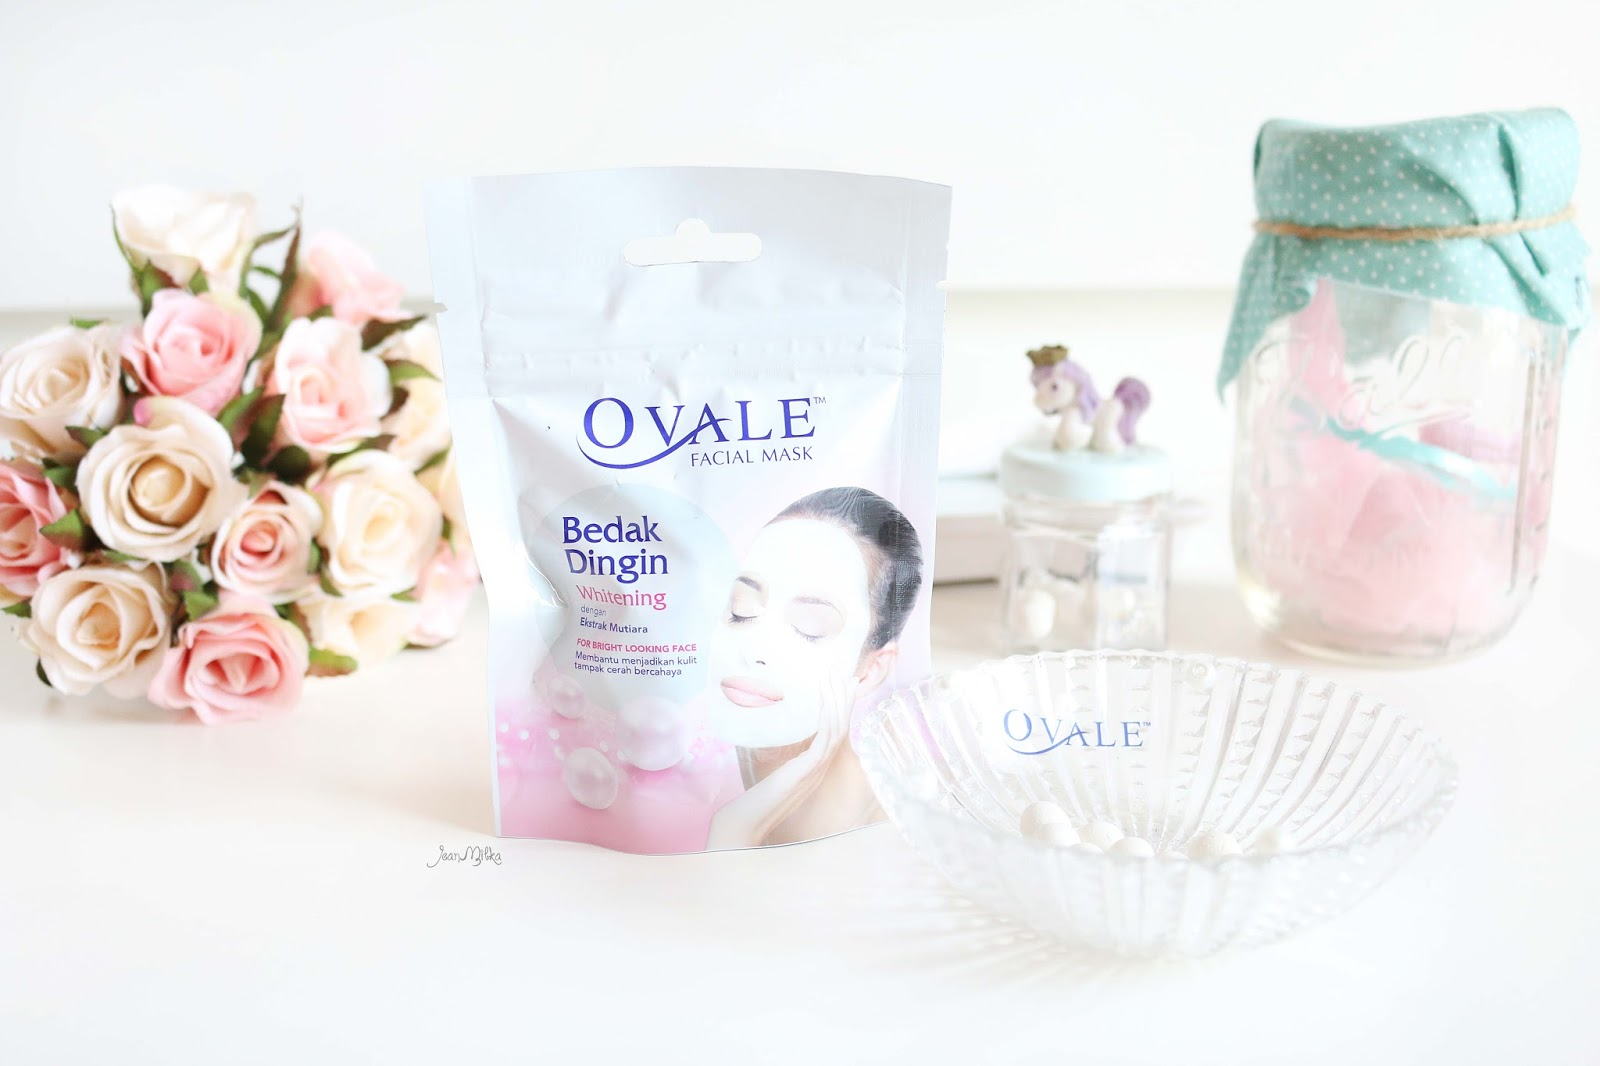 ovale, bedak dingin, ovale bedak dingin, review, demo, beauty blogger, video, skin care, masker, bedak dingin